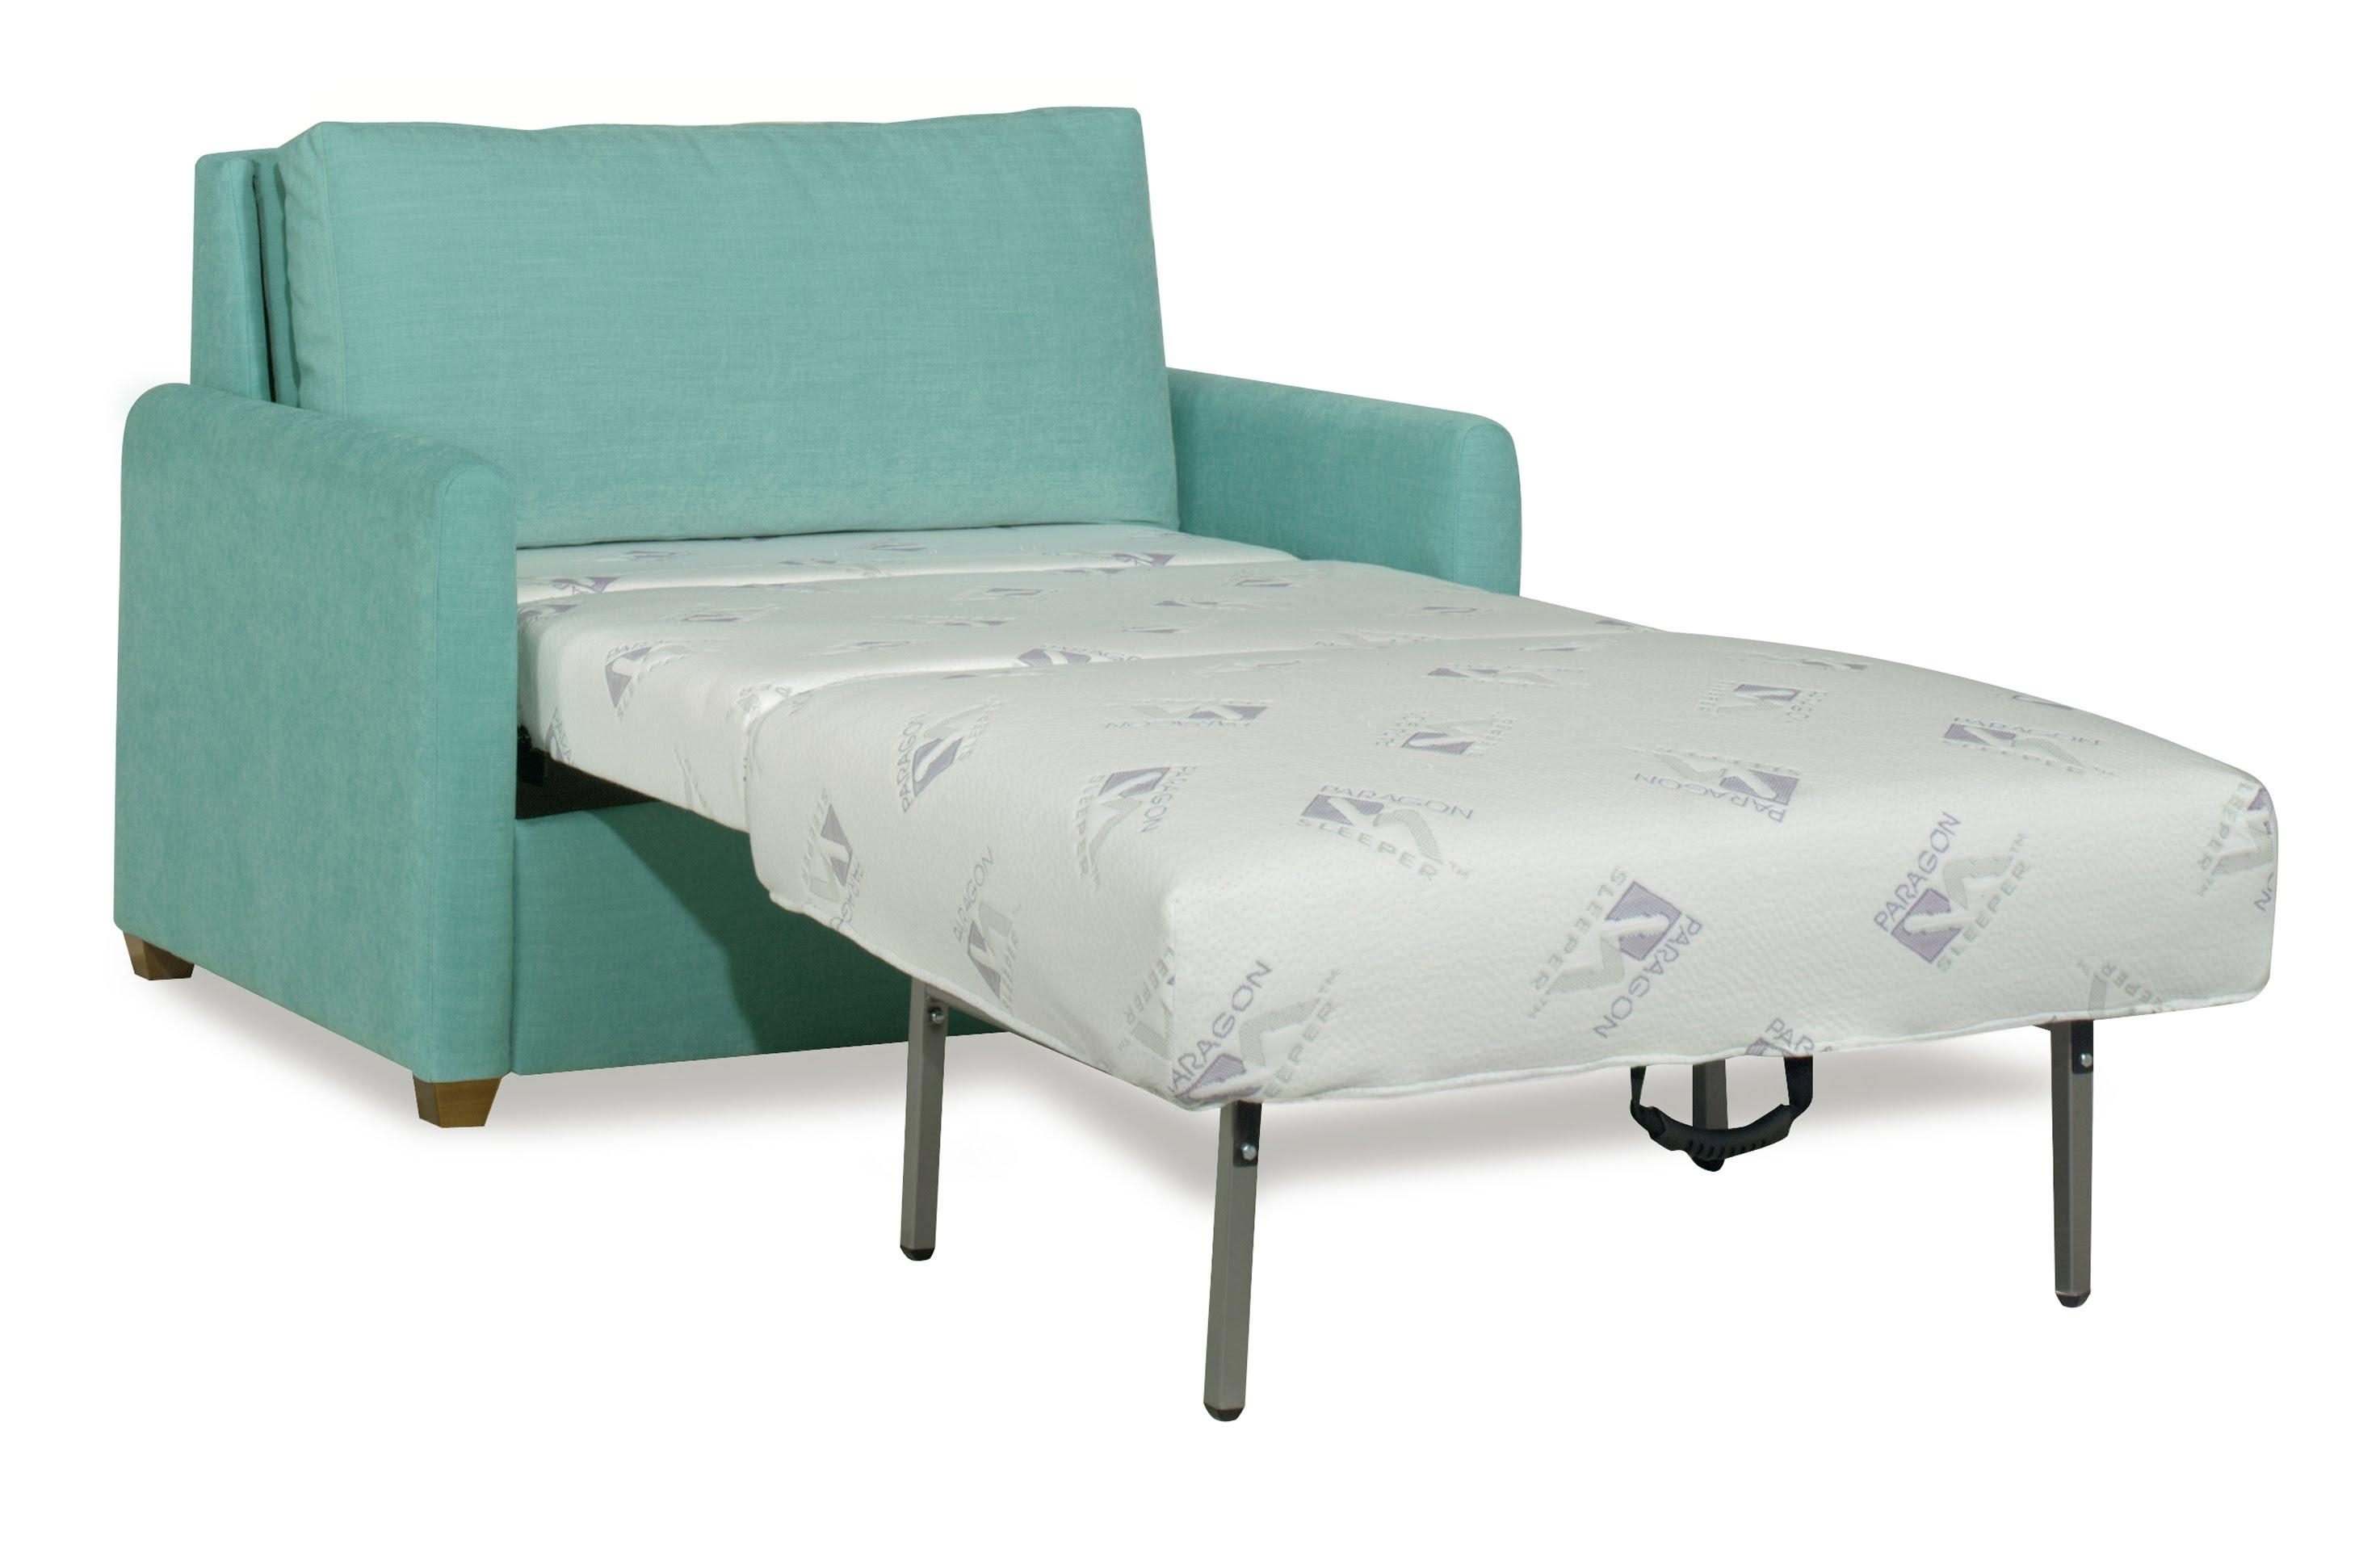 Twin Sleeper Chair | Twin Sleeper Chair Crate And Barrel – Youtube Within Loveseat Twin Sleeper Sofas (View 2 of 20)